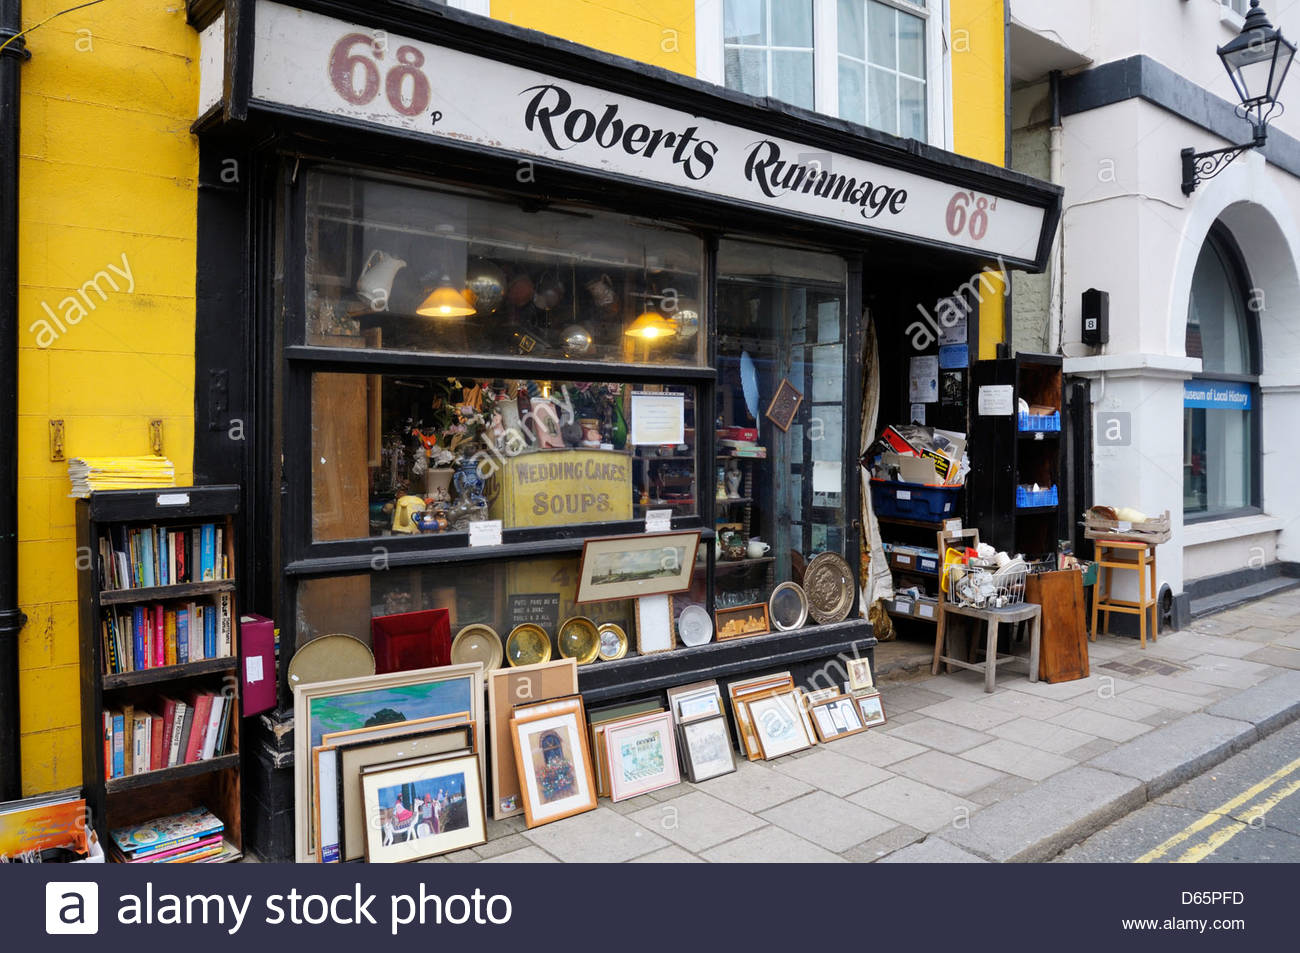 Roberts Rummage, secondhand shop, Hastings, East Sussext, England - Stock Image